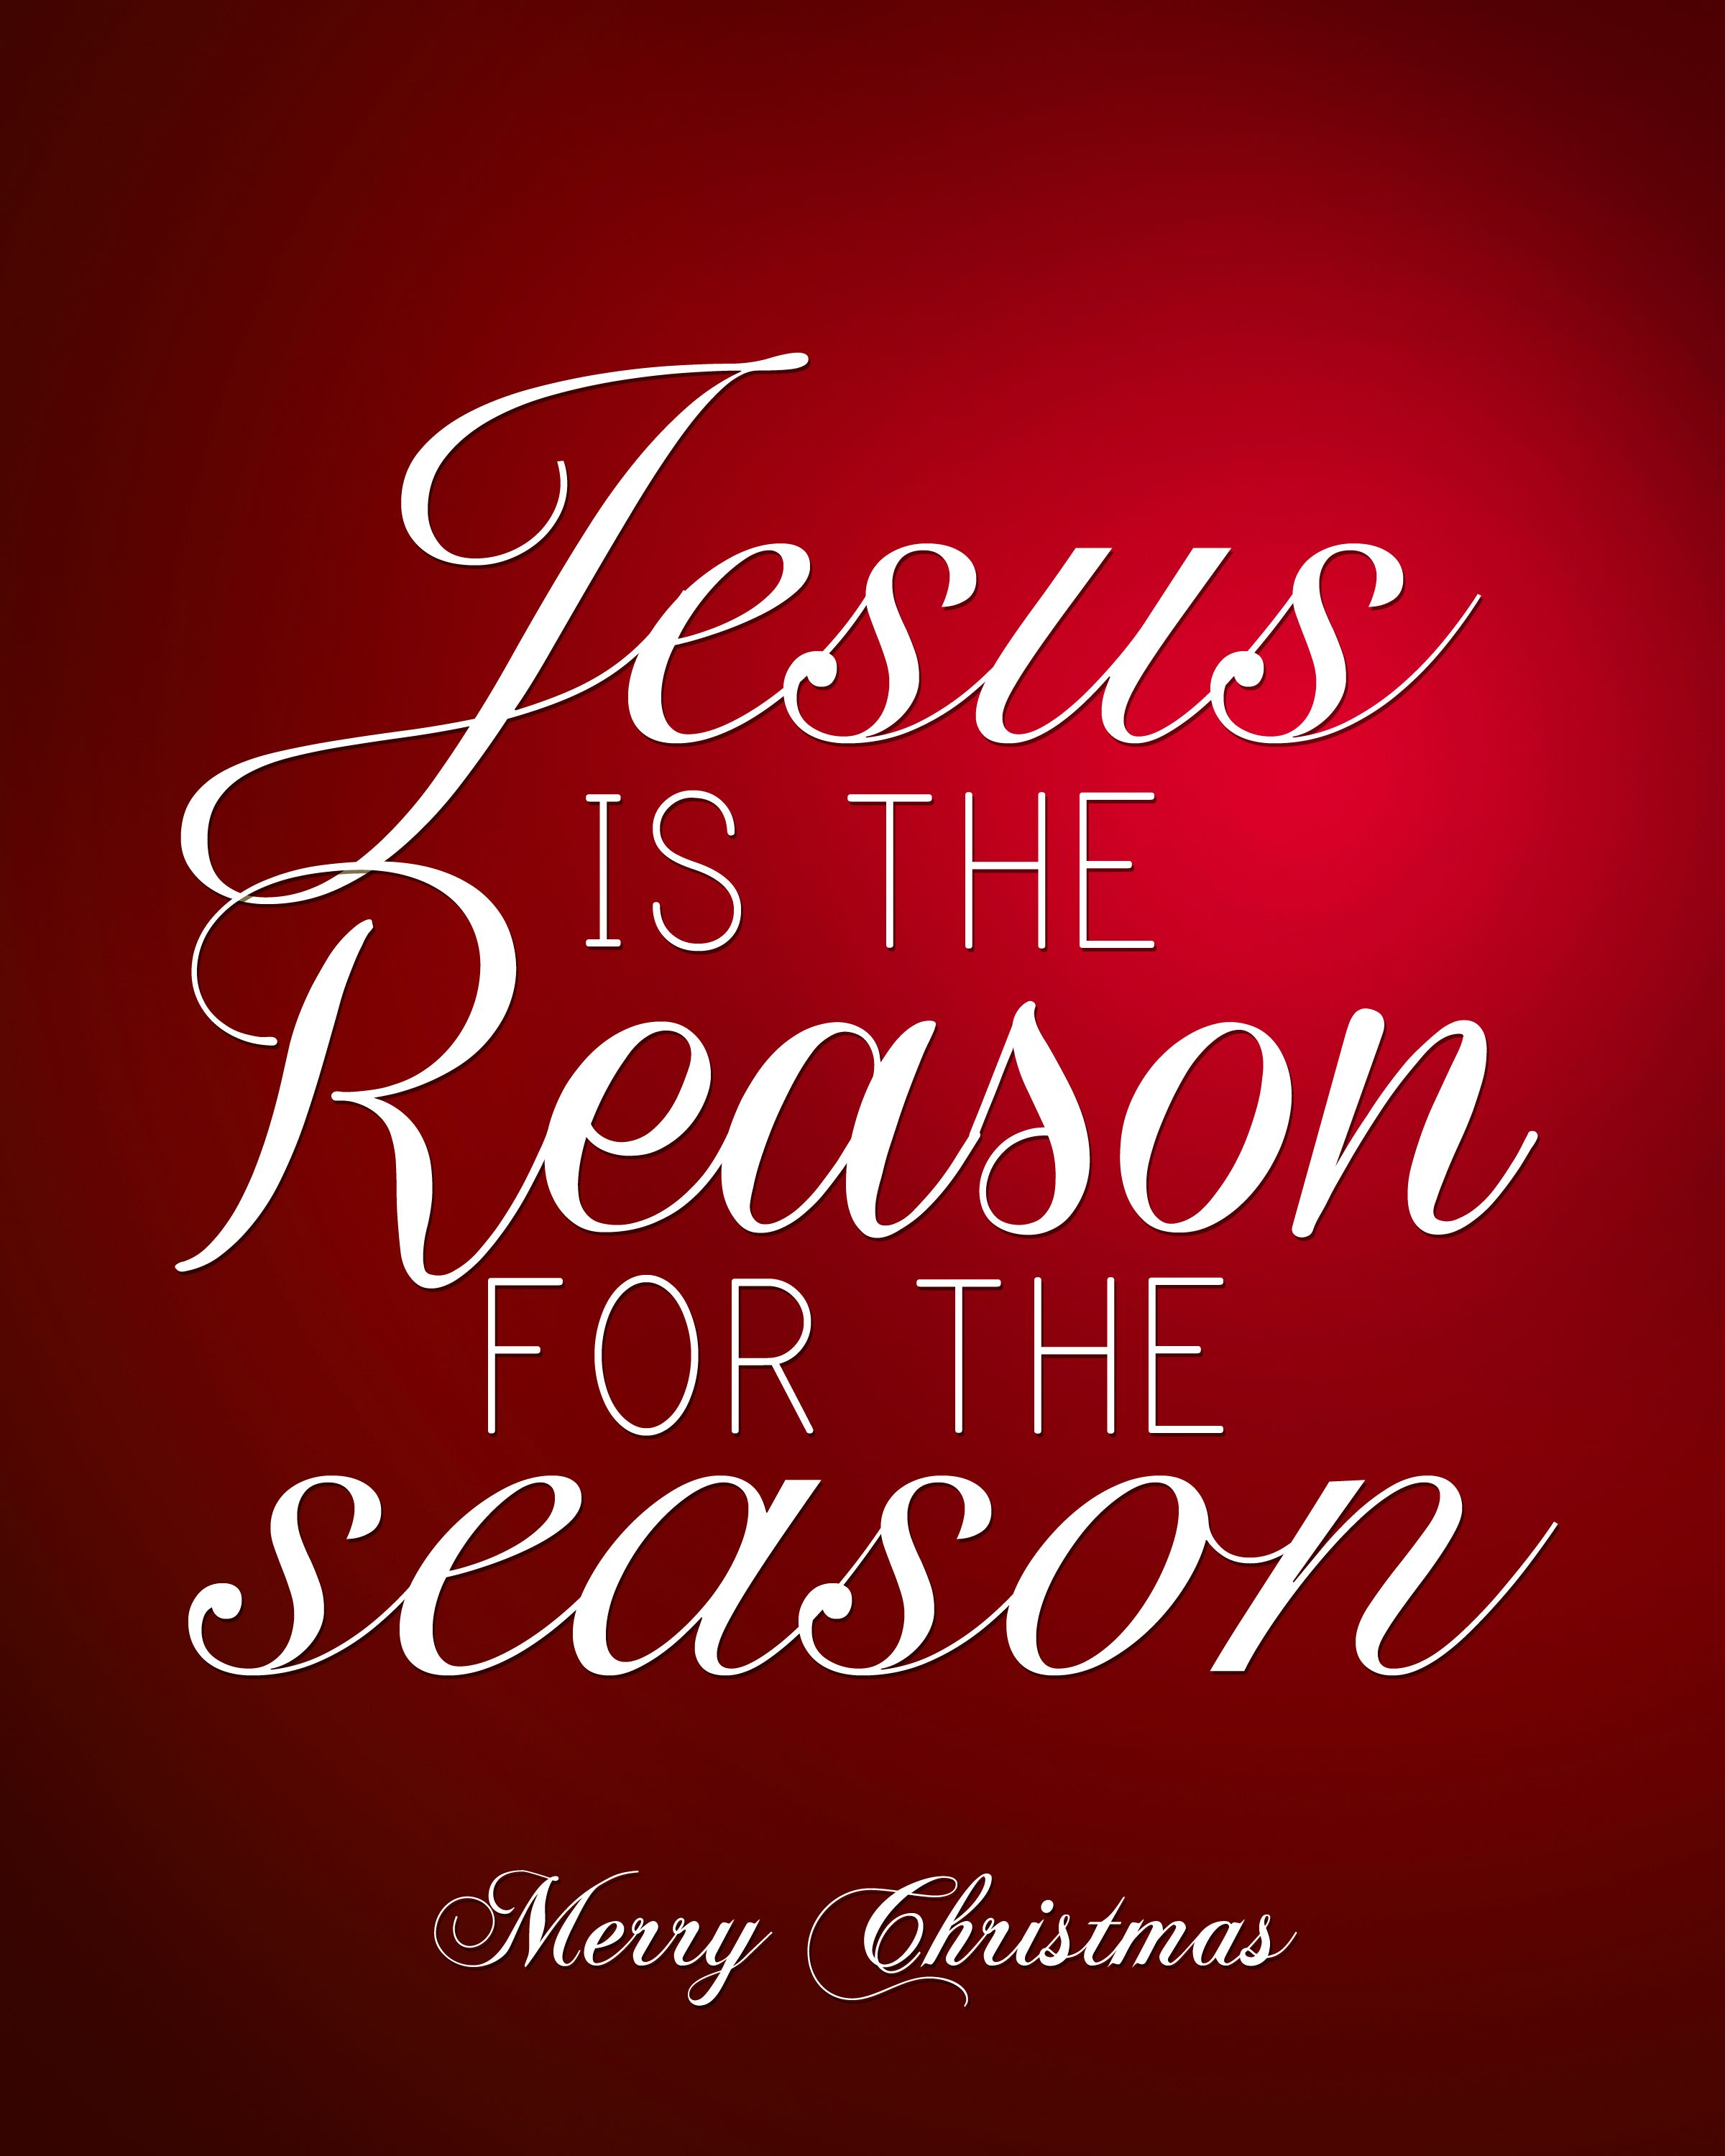 Pin on Jesus is the Reason for the Season